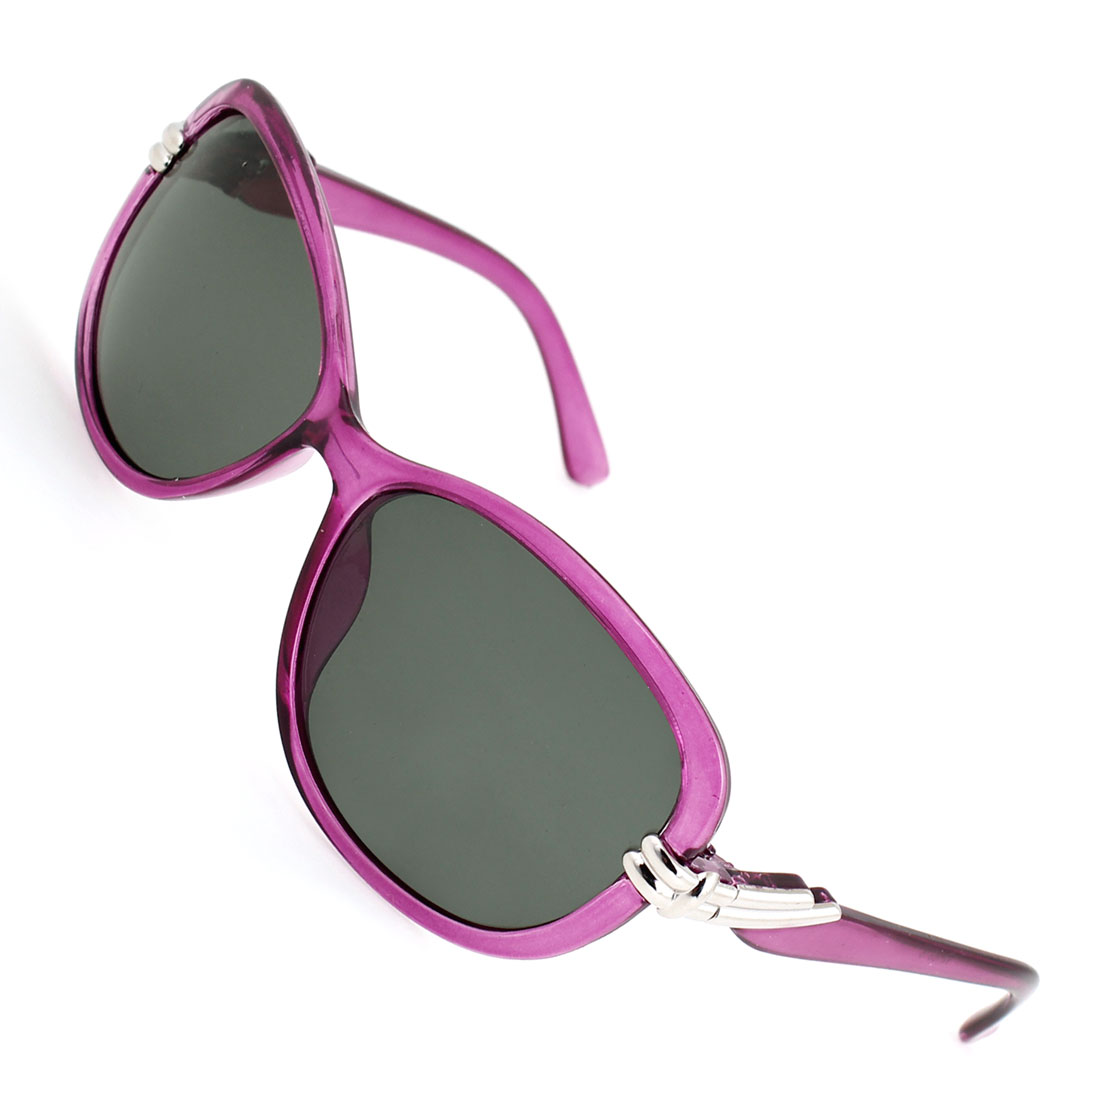 Lady Teardrop Shape Gray Lens Eyeglasses Fishing Polarized Sunglasses Purple